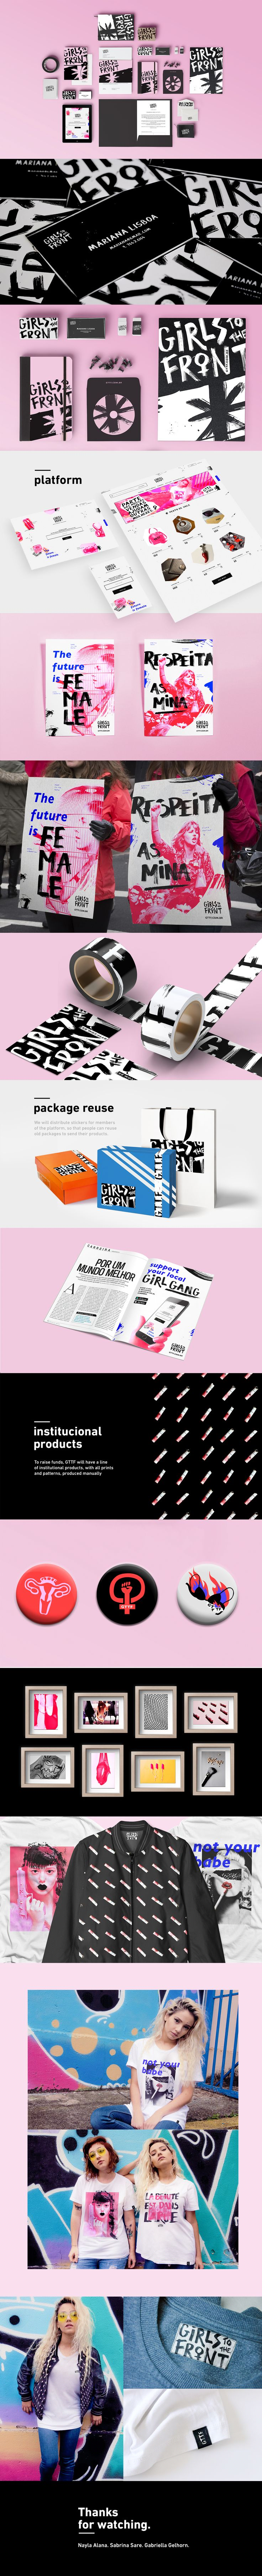 Integrated project, created for Miami ad School Brazil. Concept, branding, clothing design, photography, graphic design, UI and typography.